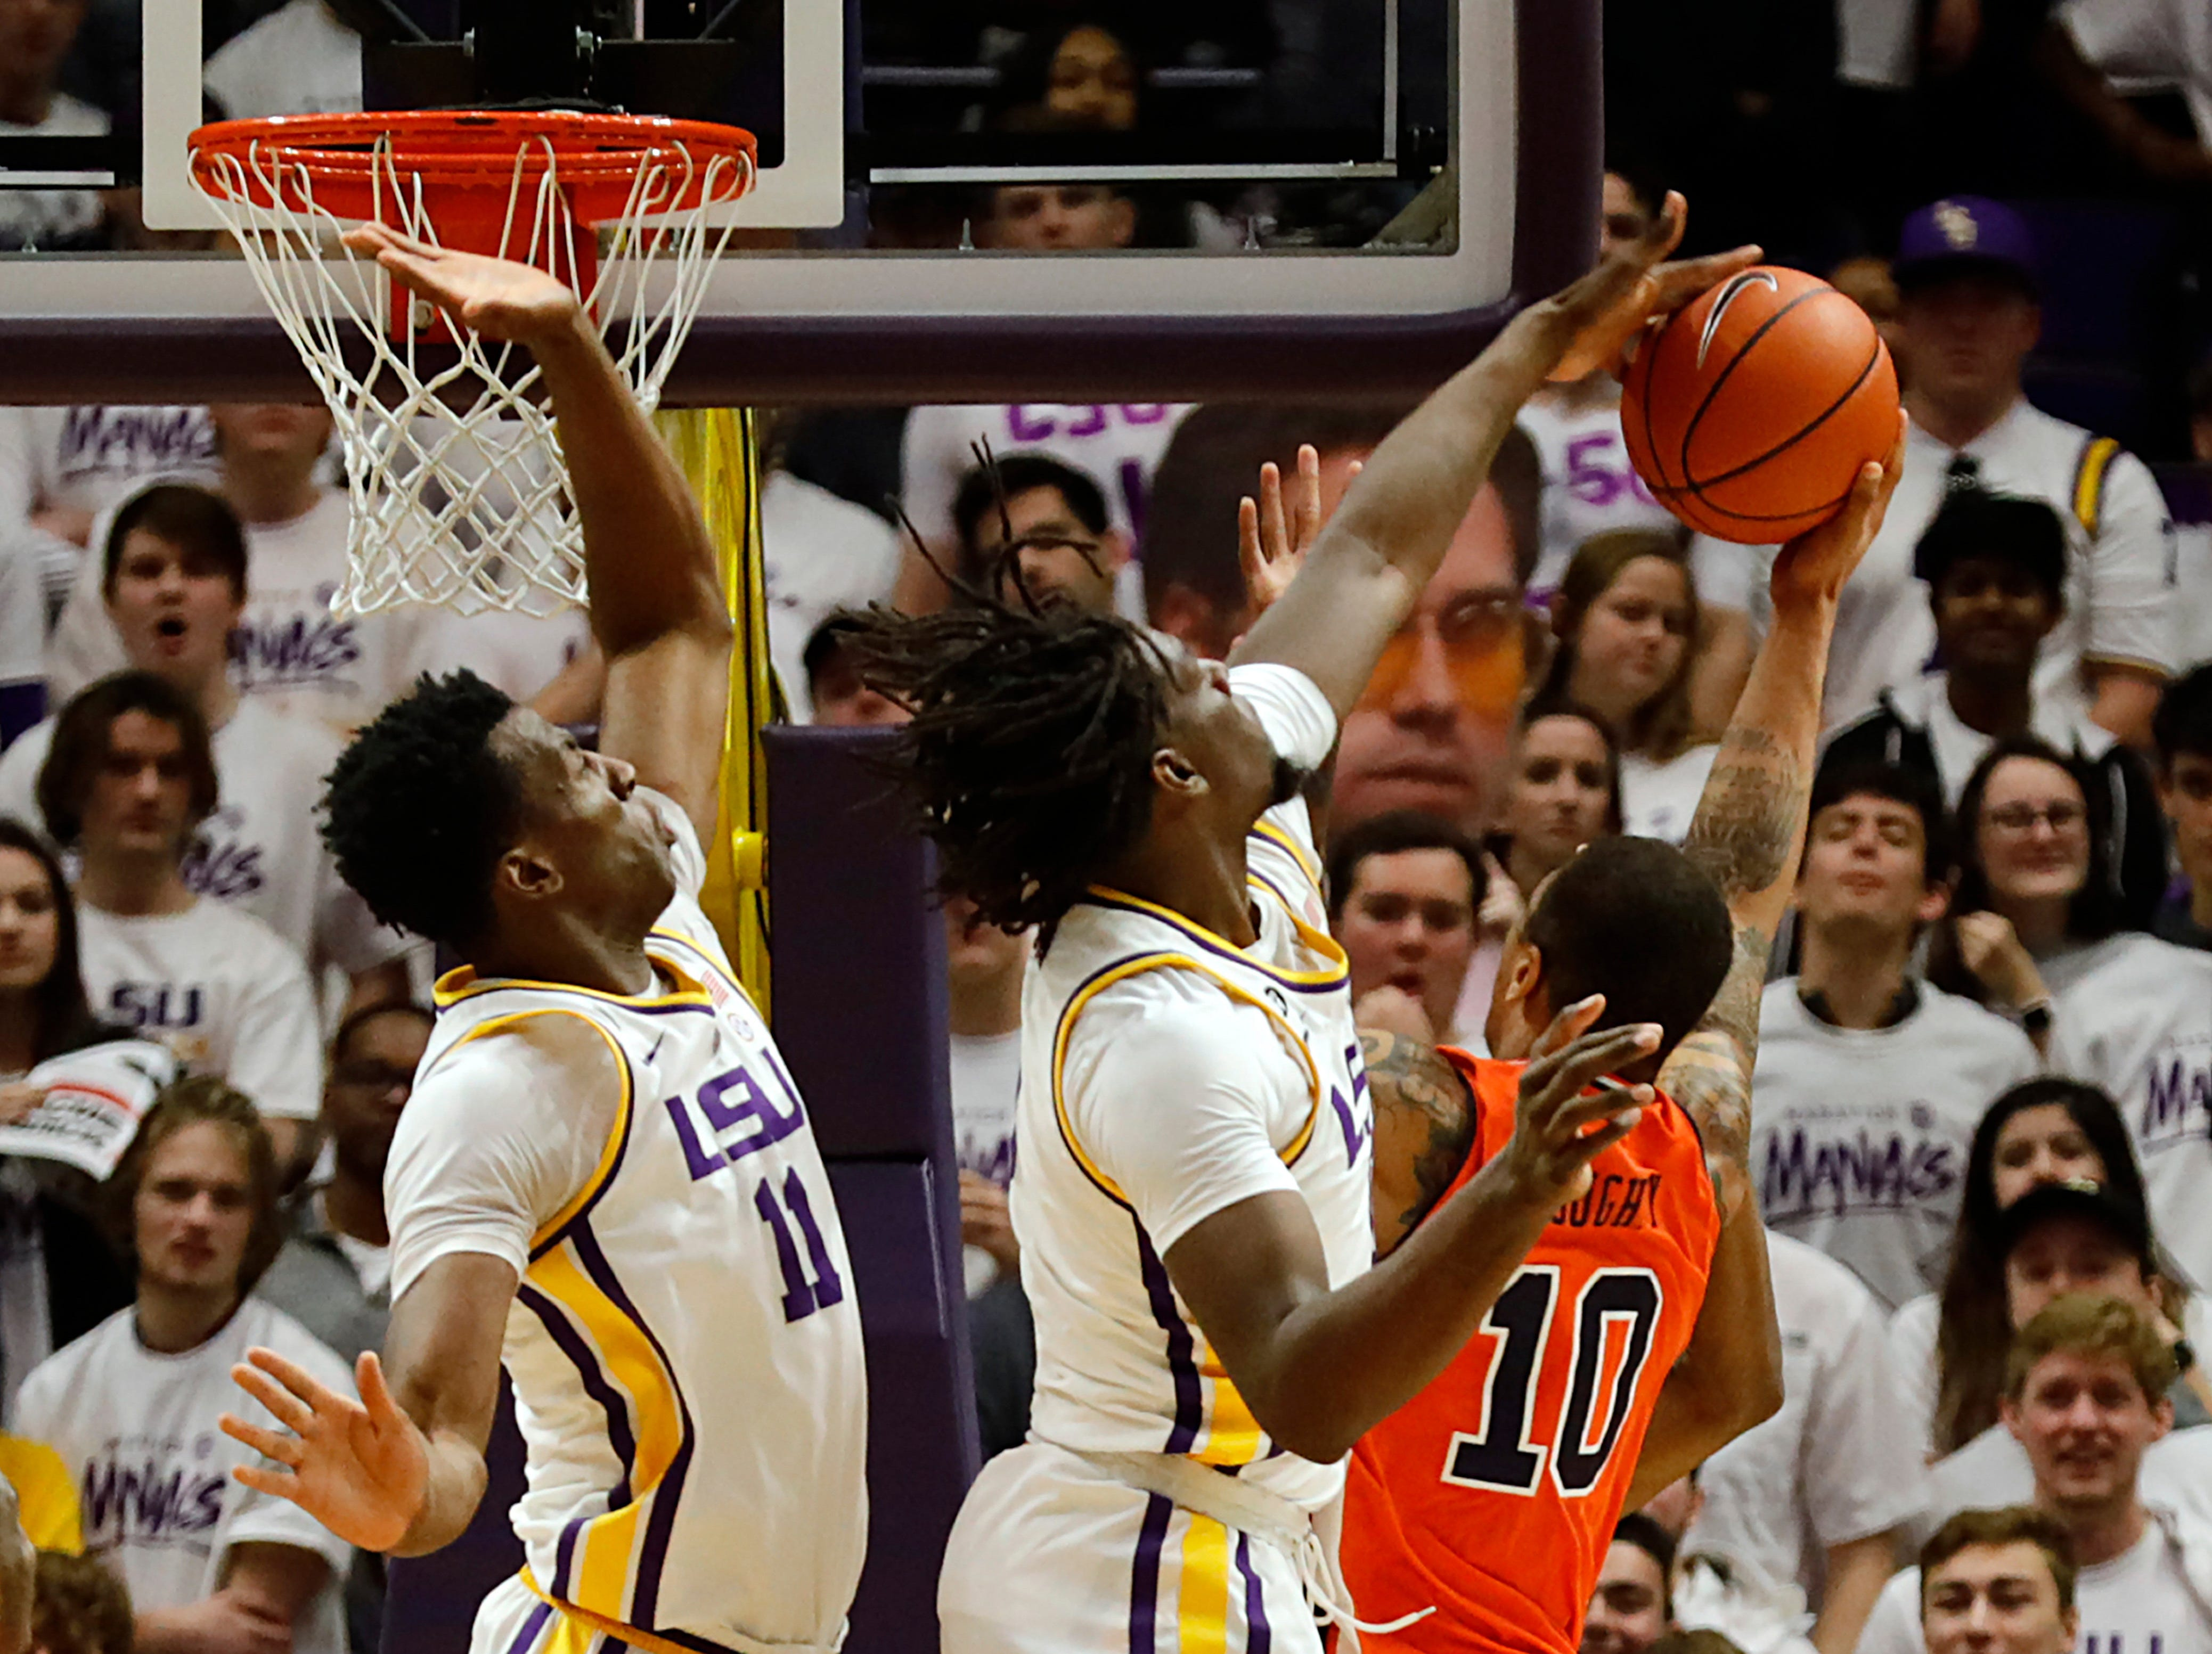 Feb 9, 2019; Baton Rouge, LA, USA; LSU Tigers forward Naz Reid (0) blocks the shot of Auburn Tigers guard Samir Doughty (10) in the second half at Maravich Assembly Center. Mandatory Credit: Stephen Lew-USA TODAY Sports